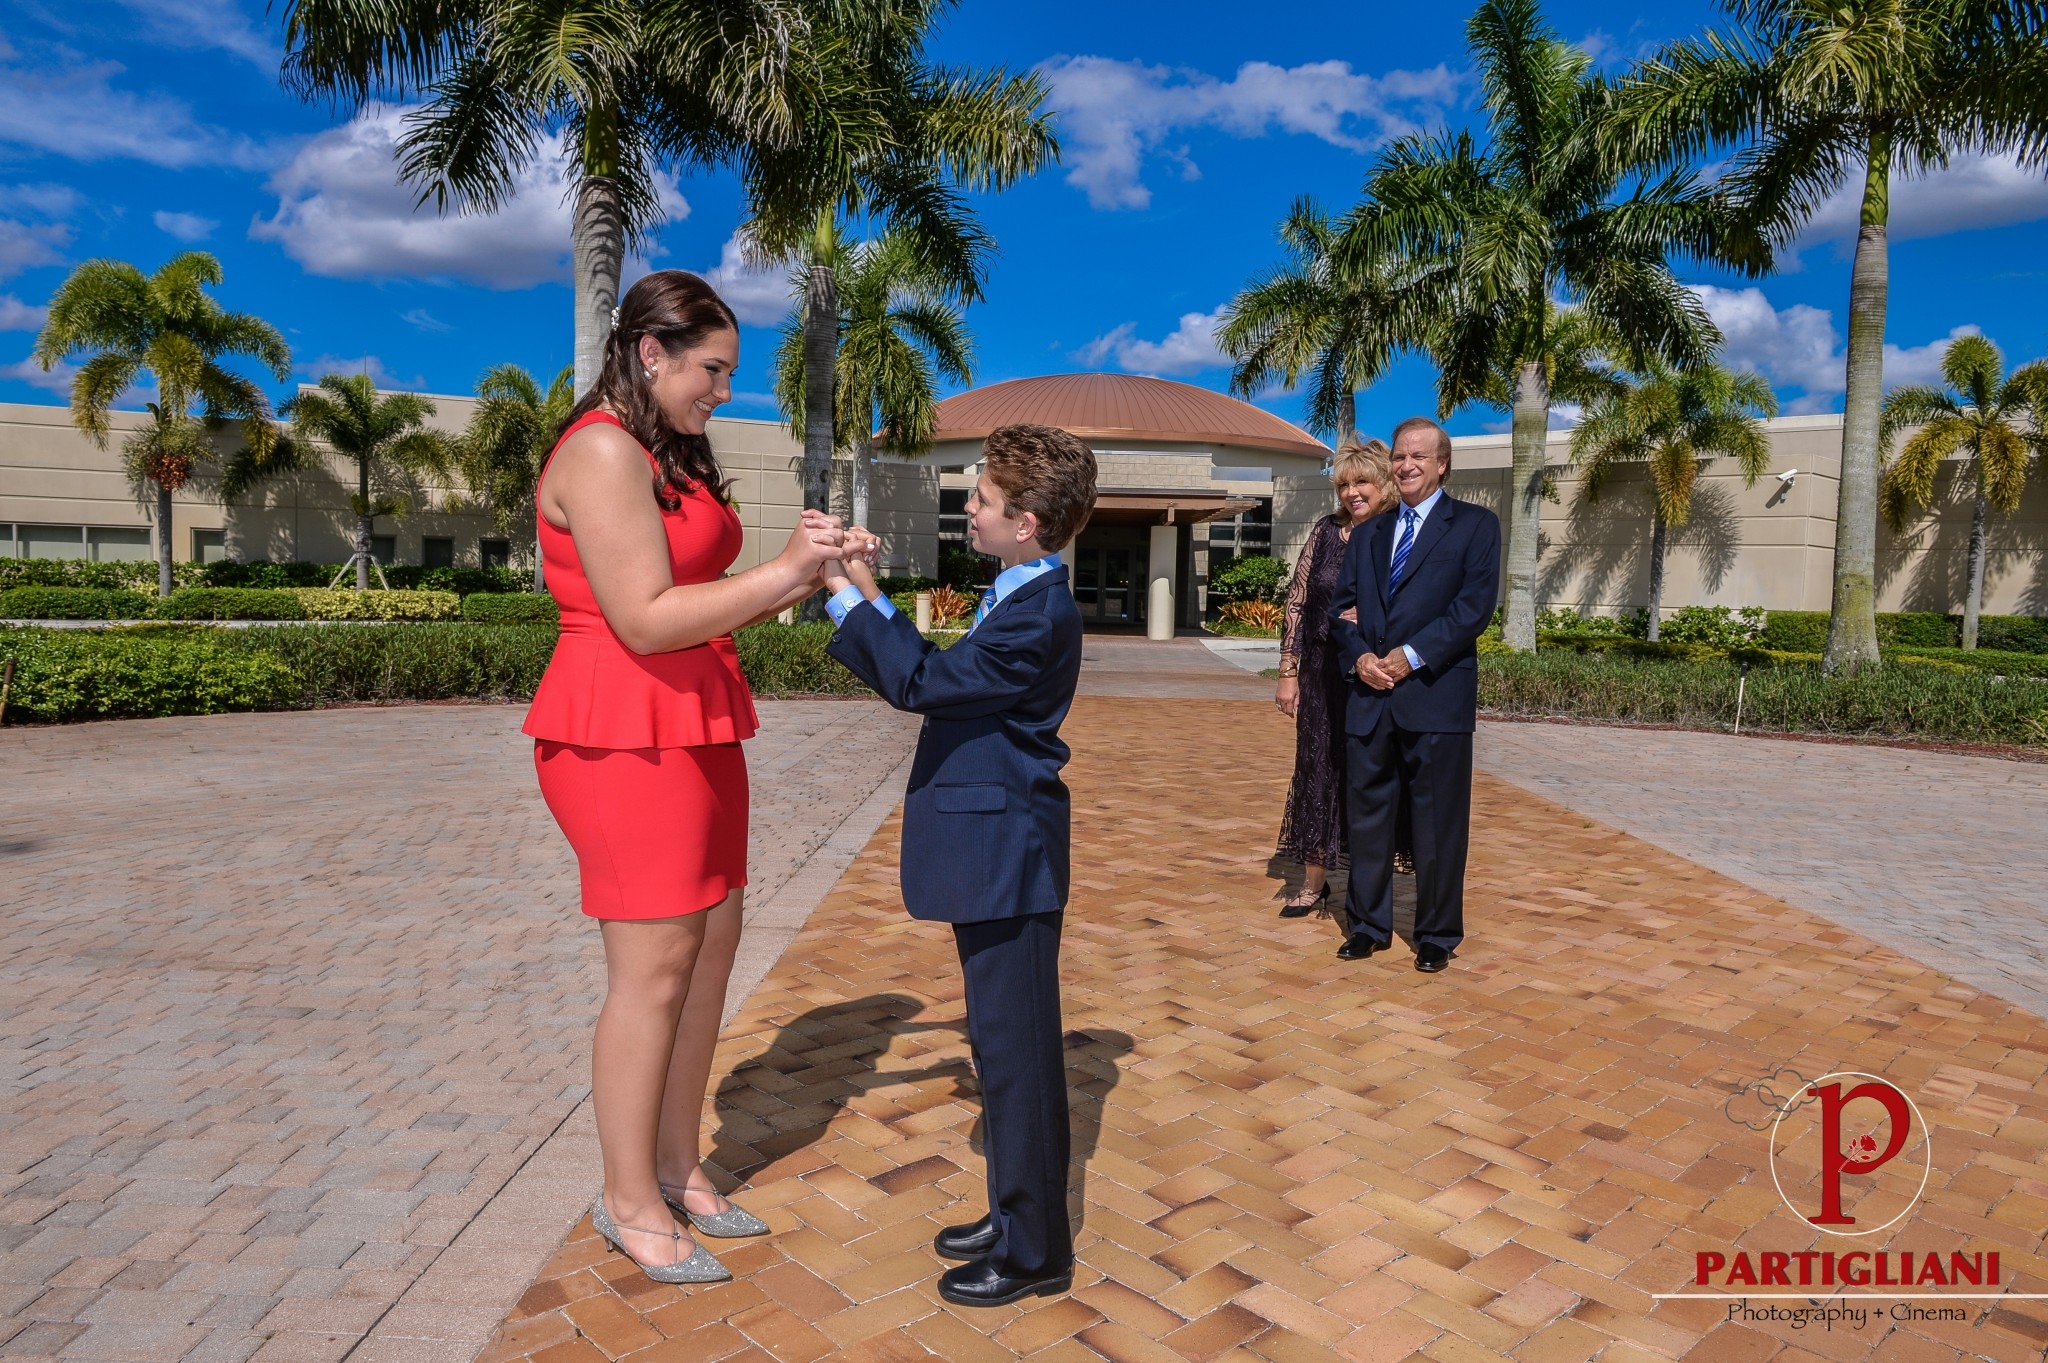 DANIEL'S BAR MITZVAH BY PARTIGLIANI PHOTOGRAPHY Y CINEMA, TEMPLE DOR DORIM WESTON FLORIDA, ONE OF A KIND PARTY DESIGN, JAMMIN EXPRESS ENTERTAINMENT